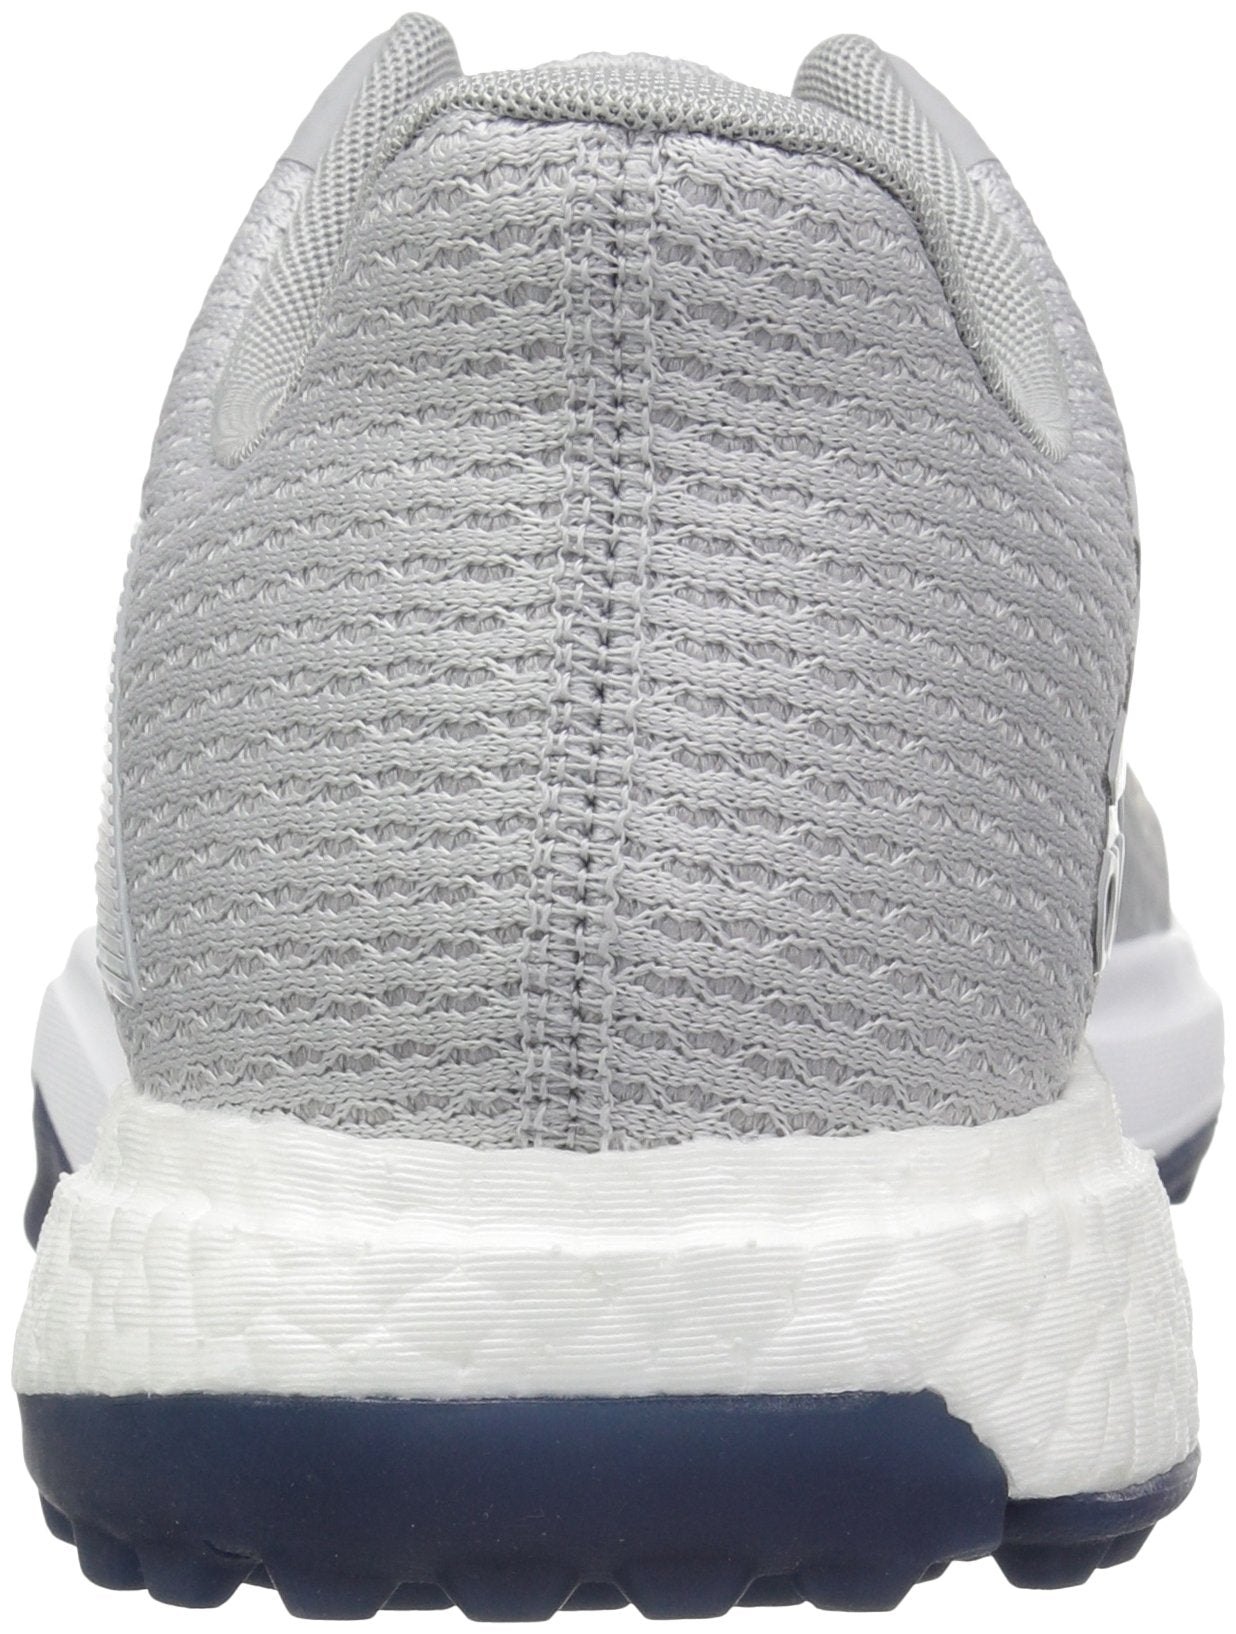 adidas Mens adipower S Boost 3 Golf Shoes